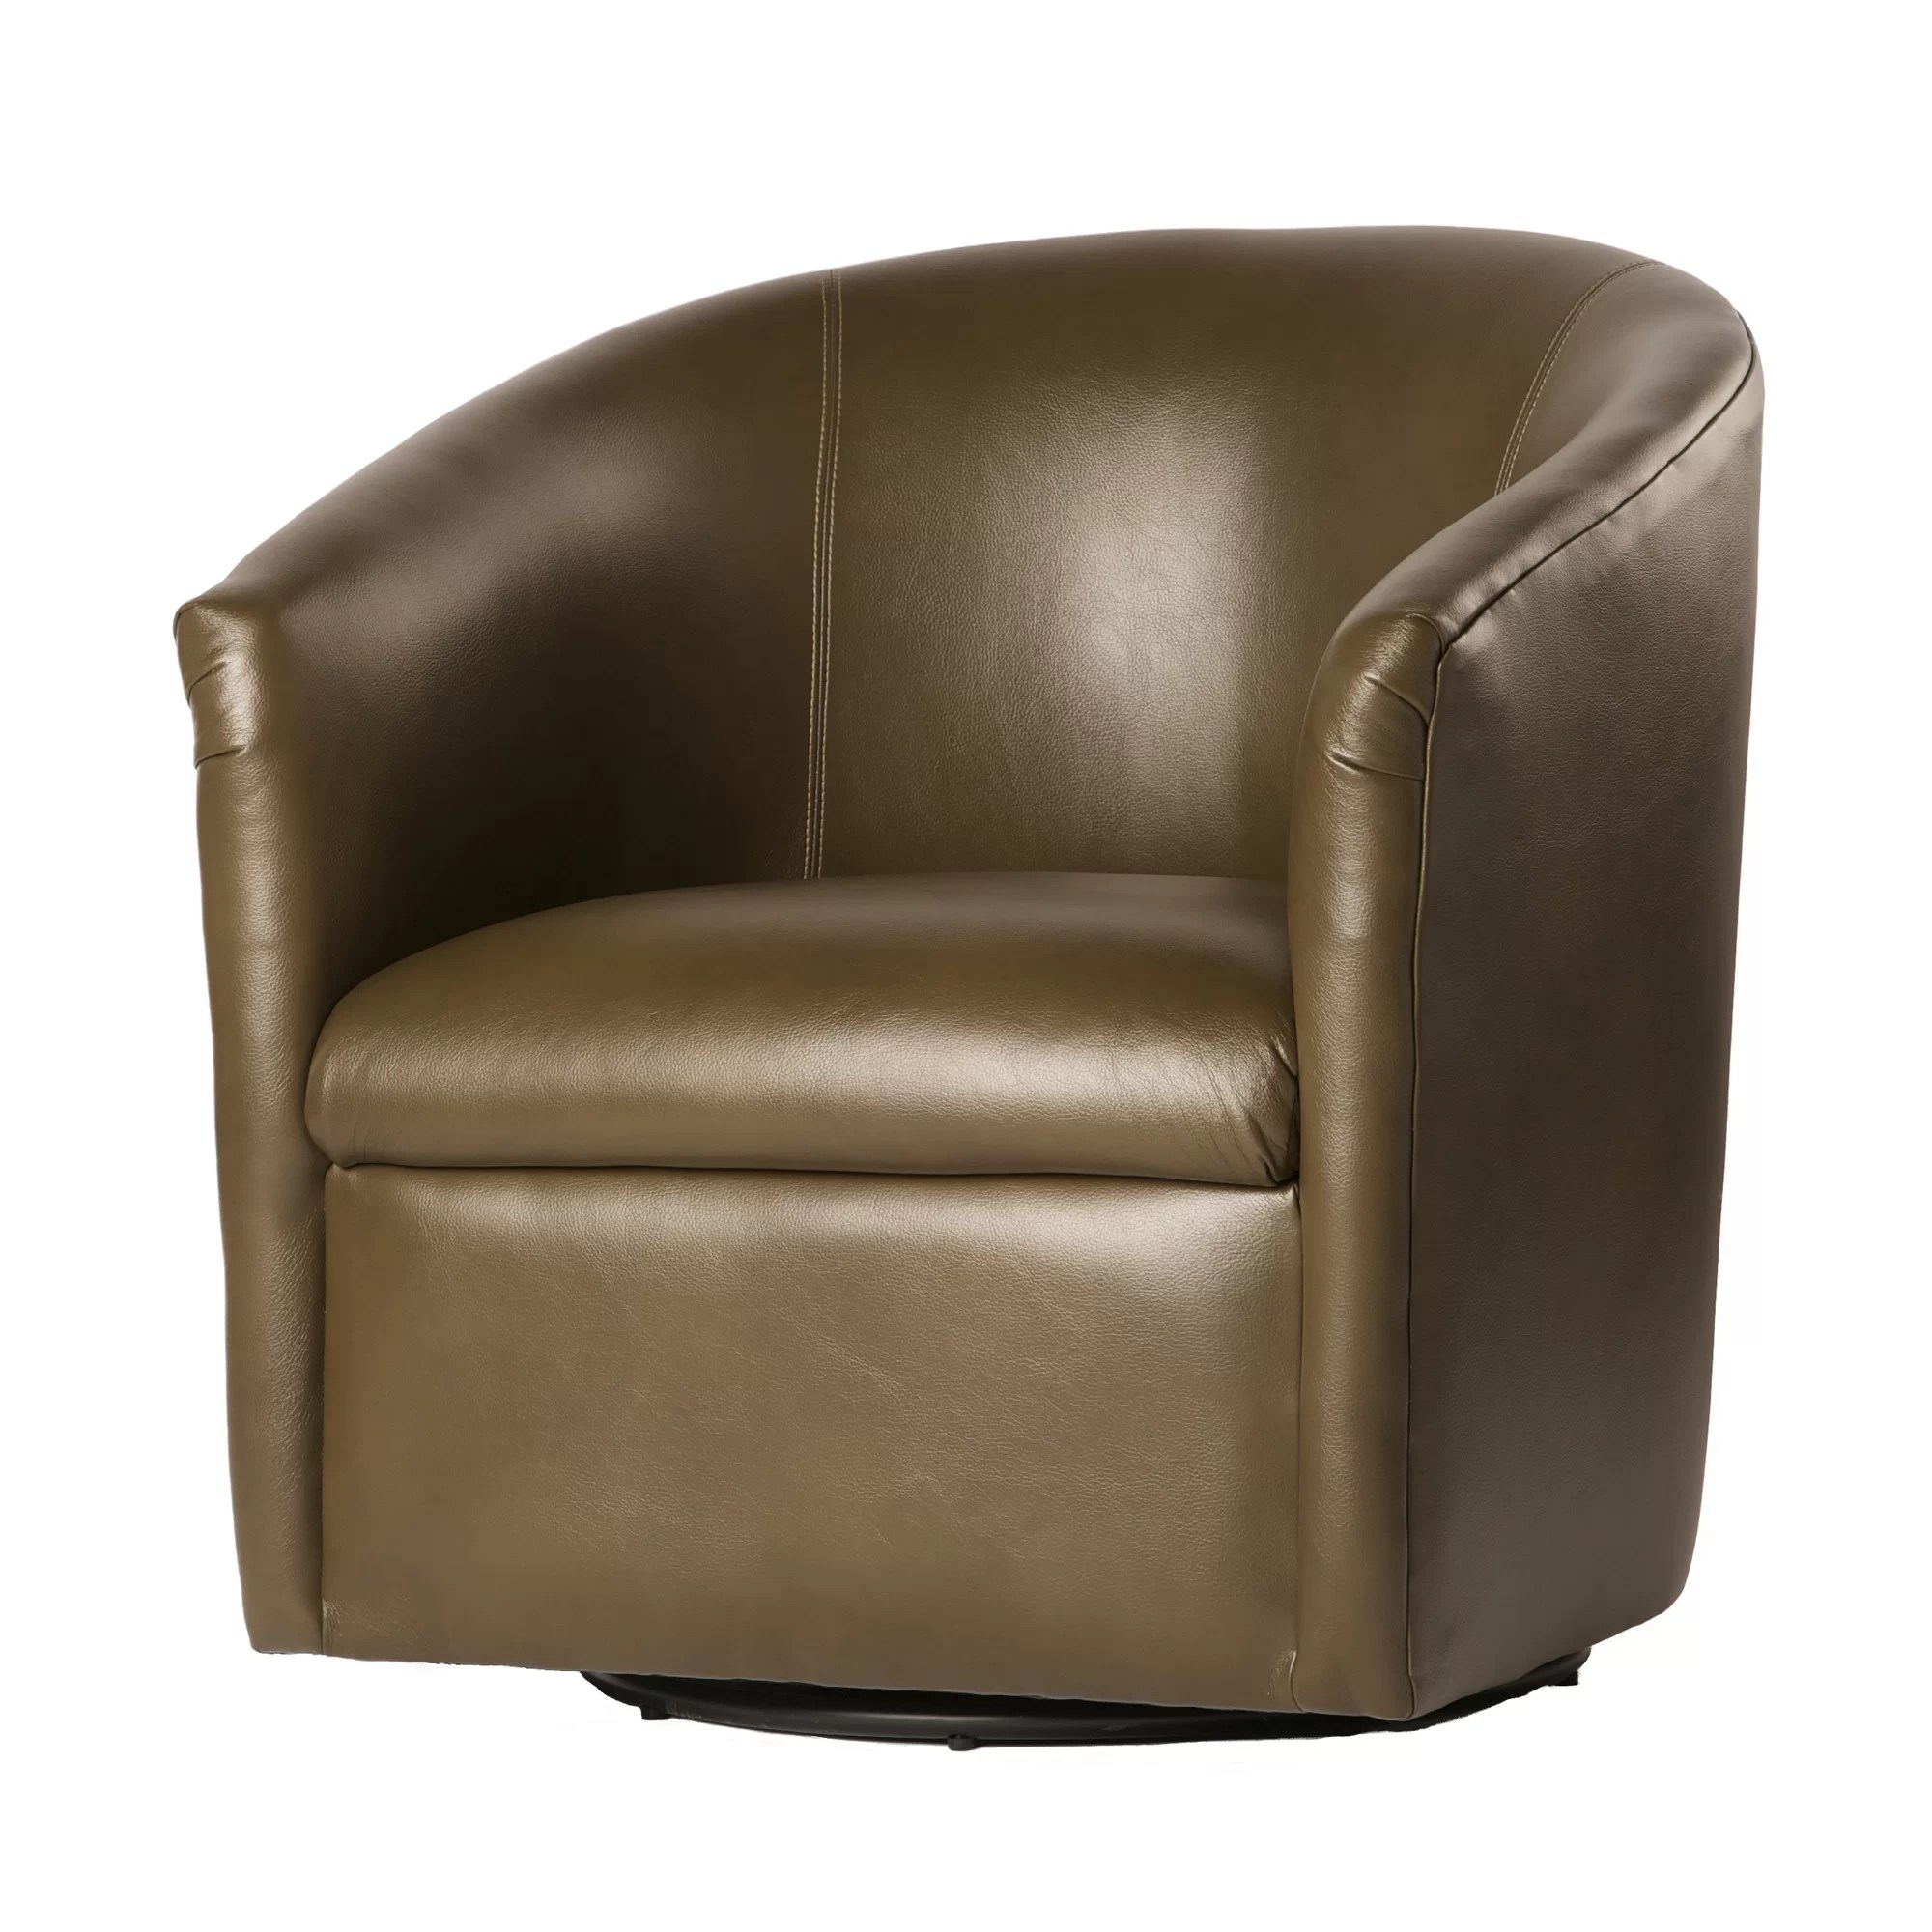 Barrel Chair Swivel Comfort Pointe Draper Swivel Barrel Chair Ebay